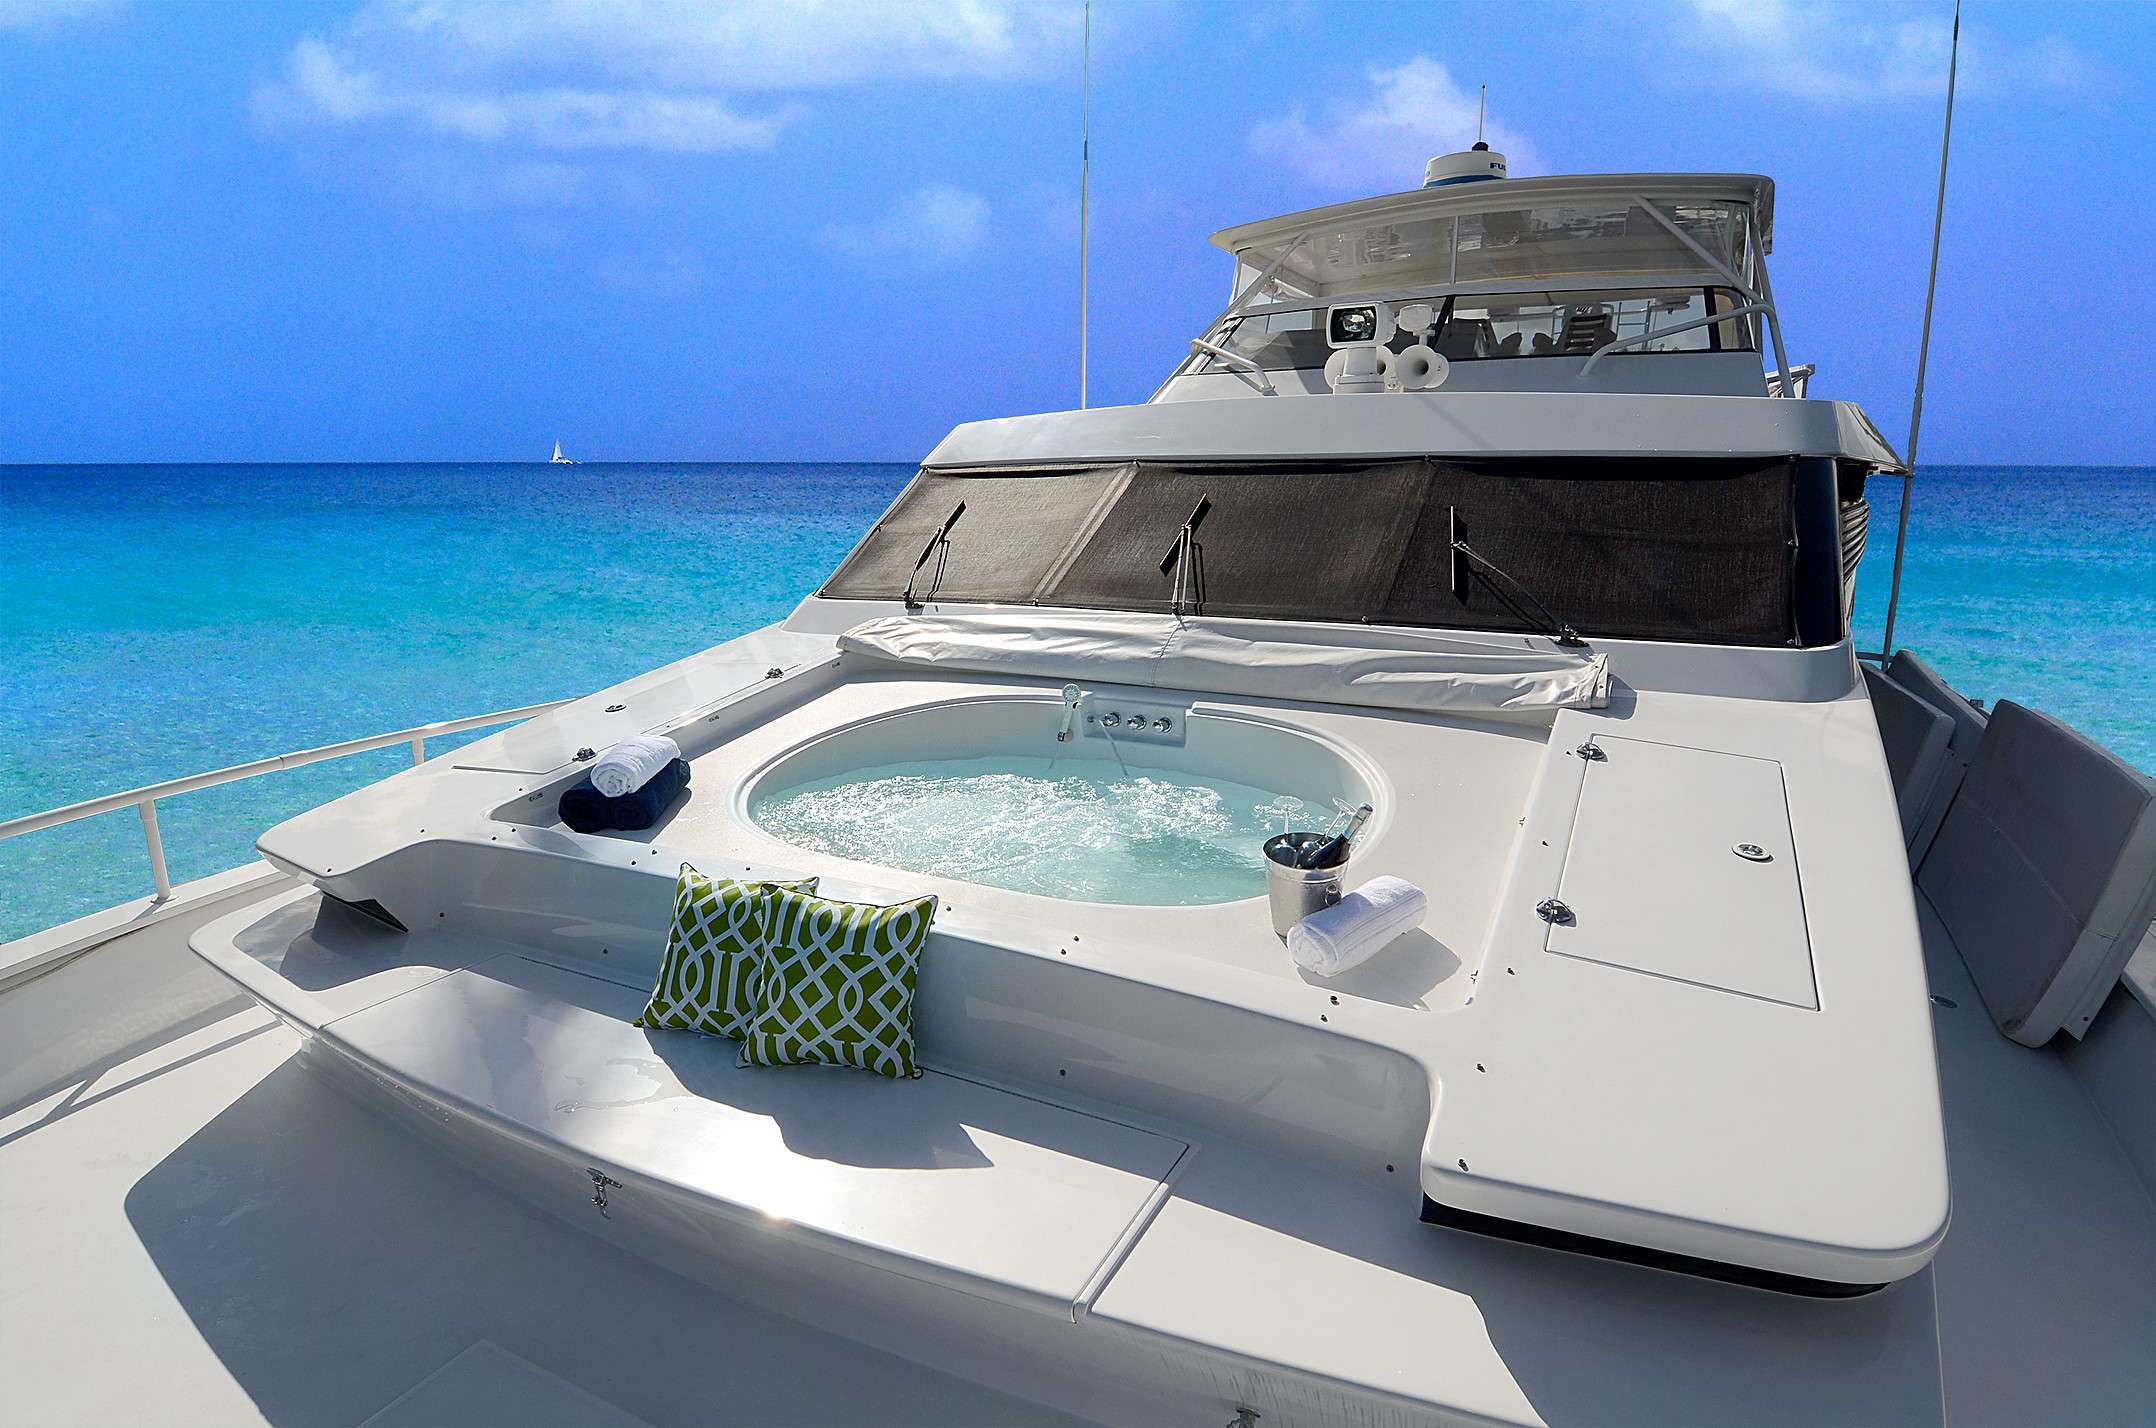 Pool can be filled with fresh or saltwater